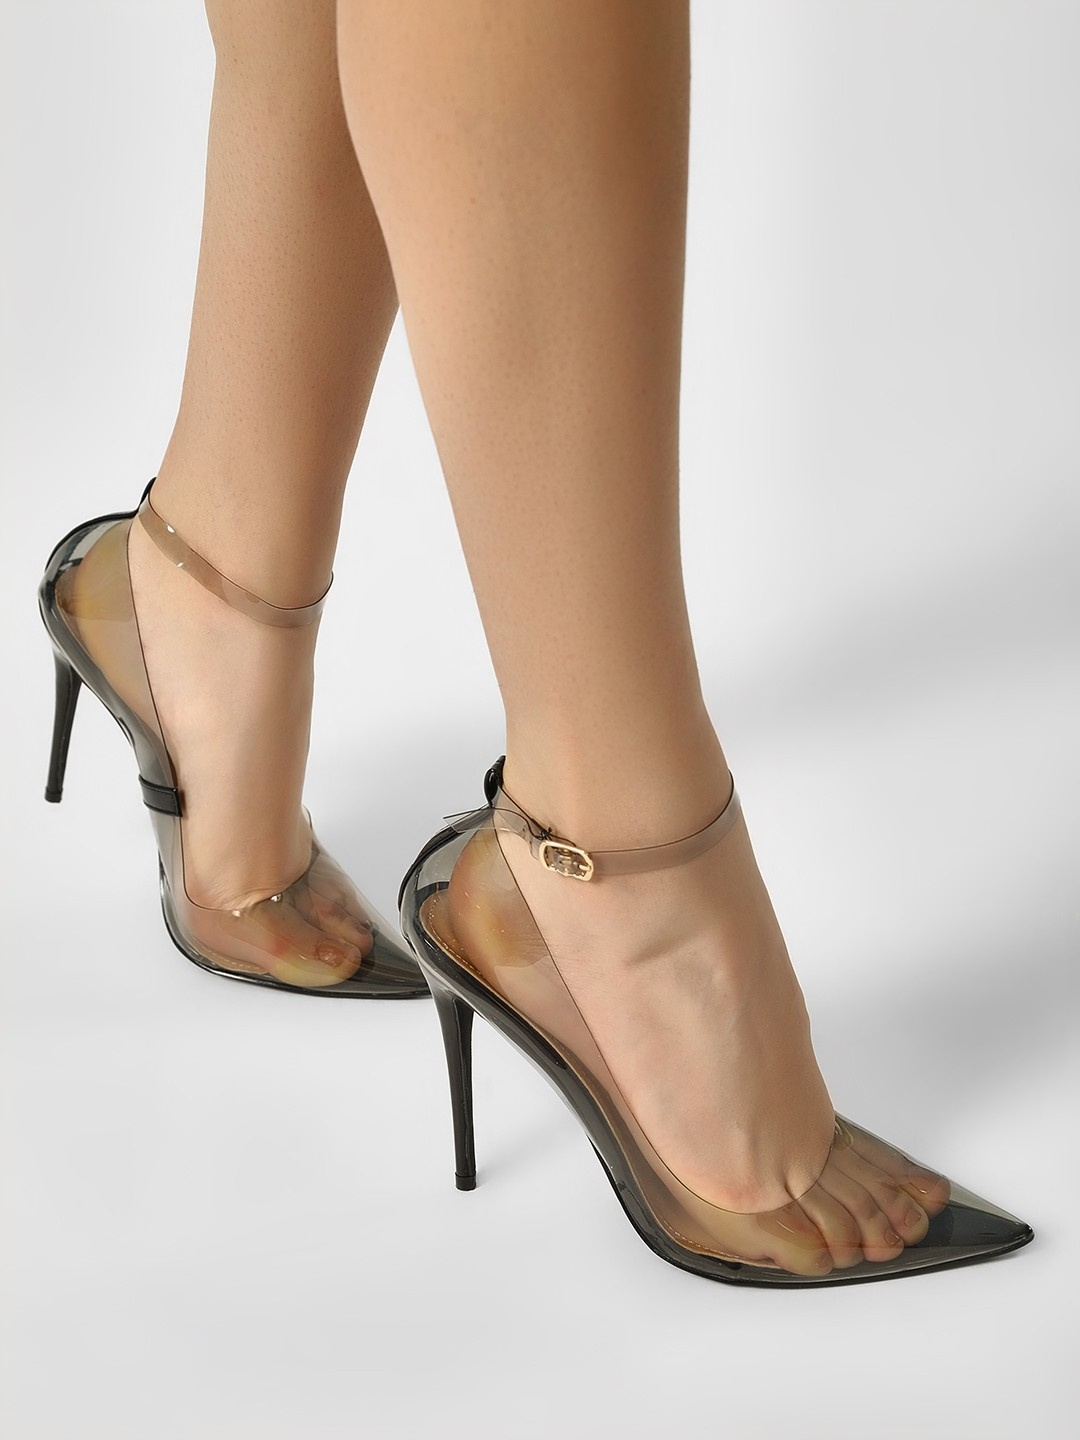 My Foot Couture Black Transparent Ankle Strap Heeled Pumps 1